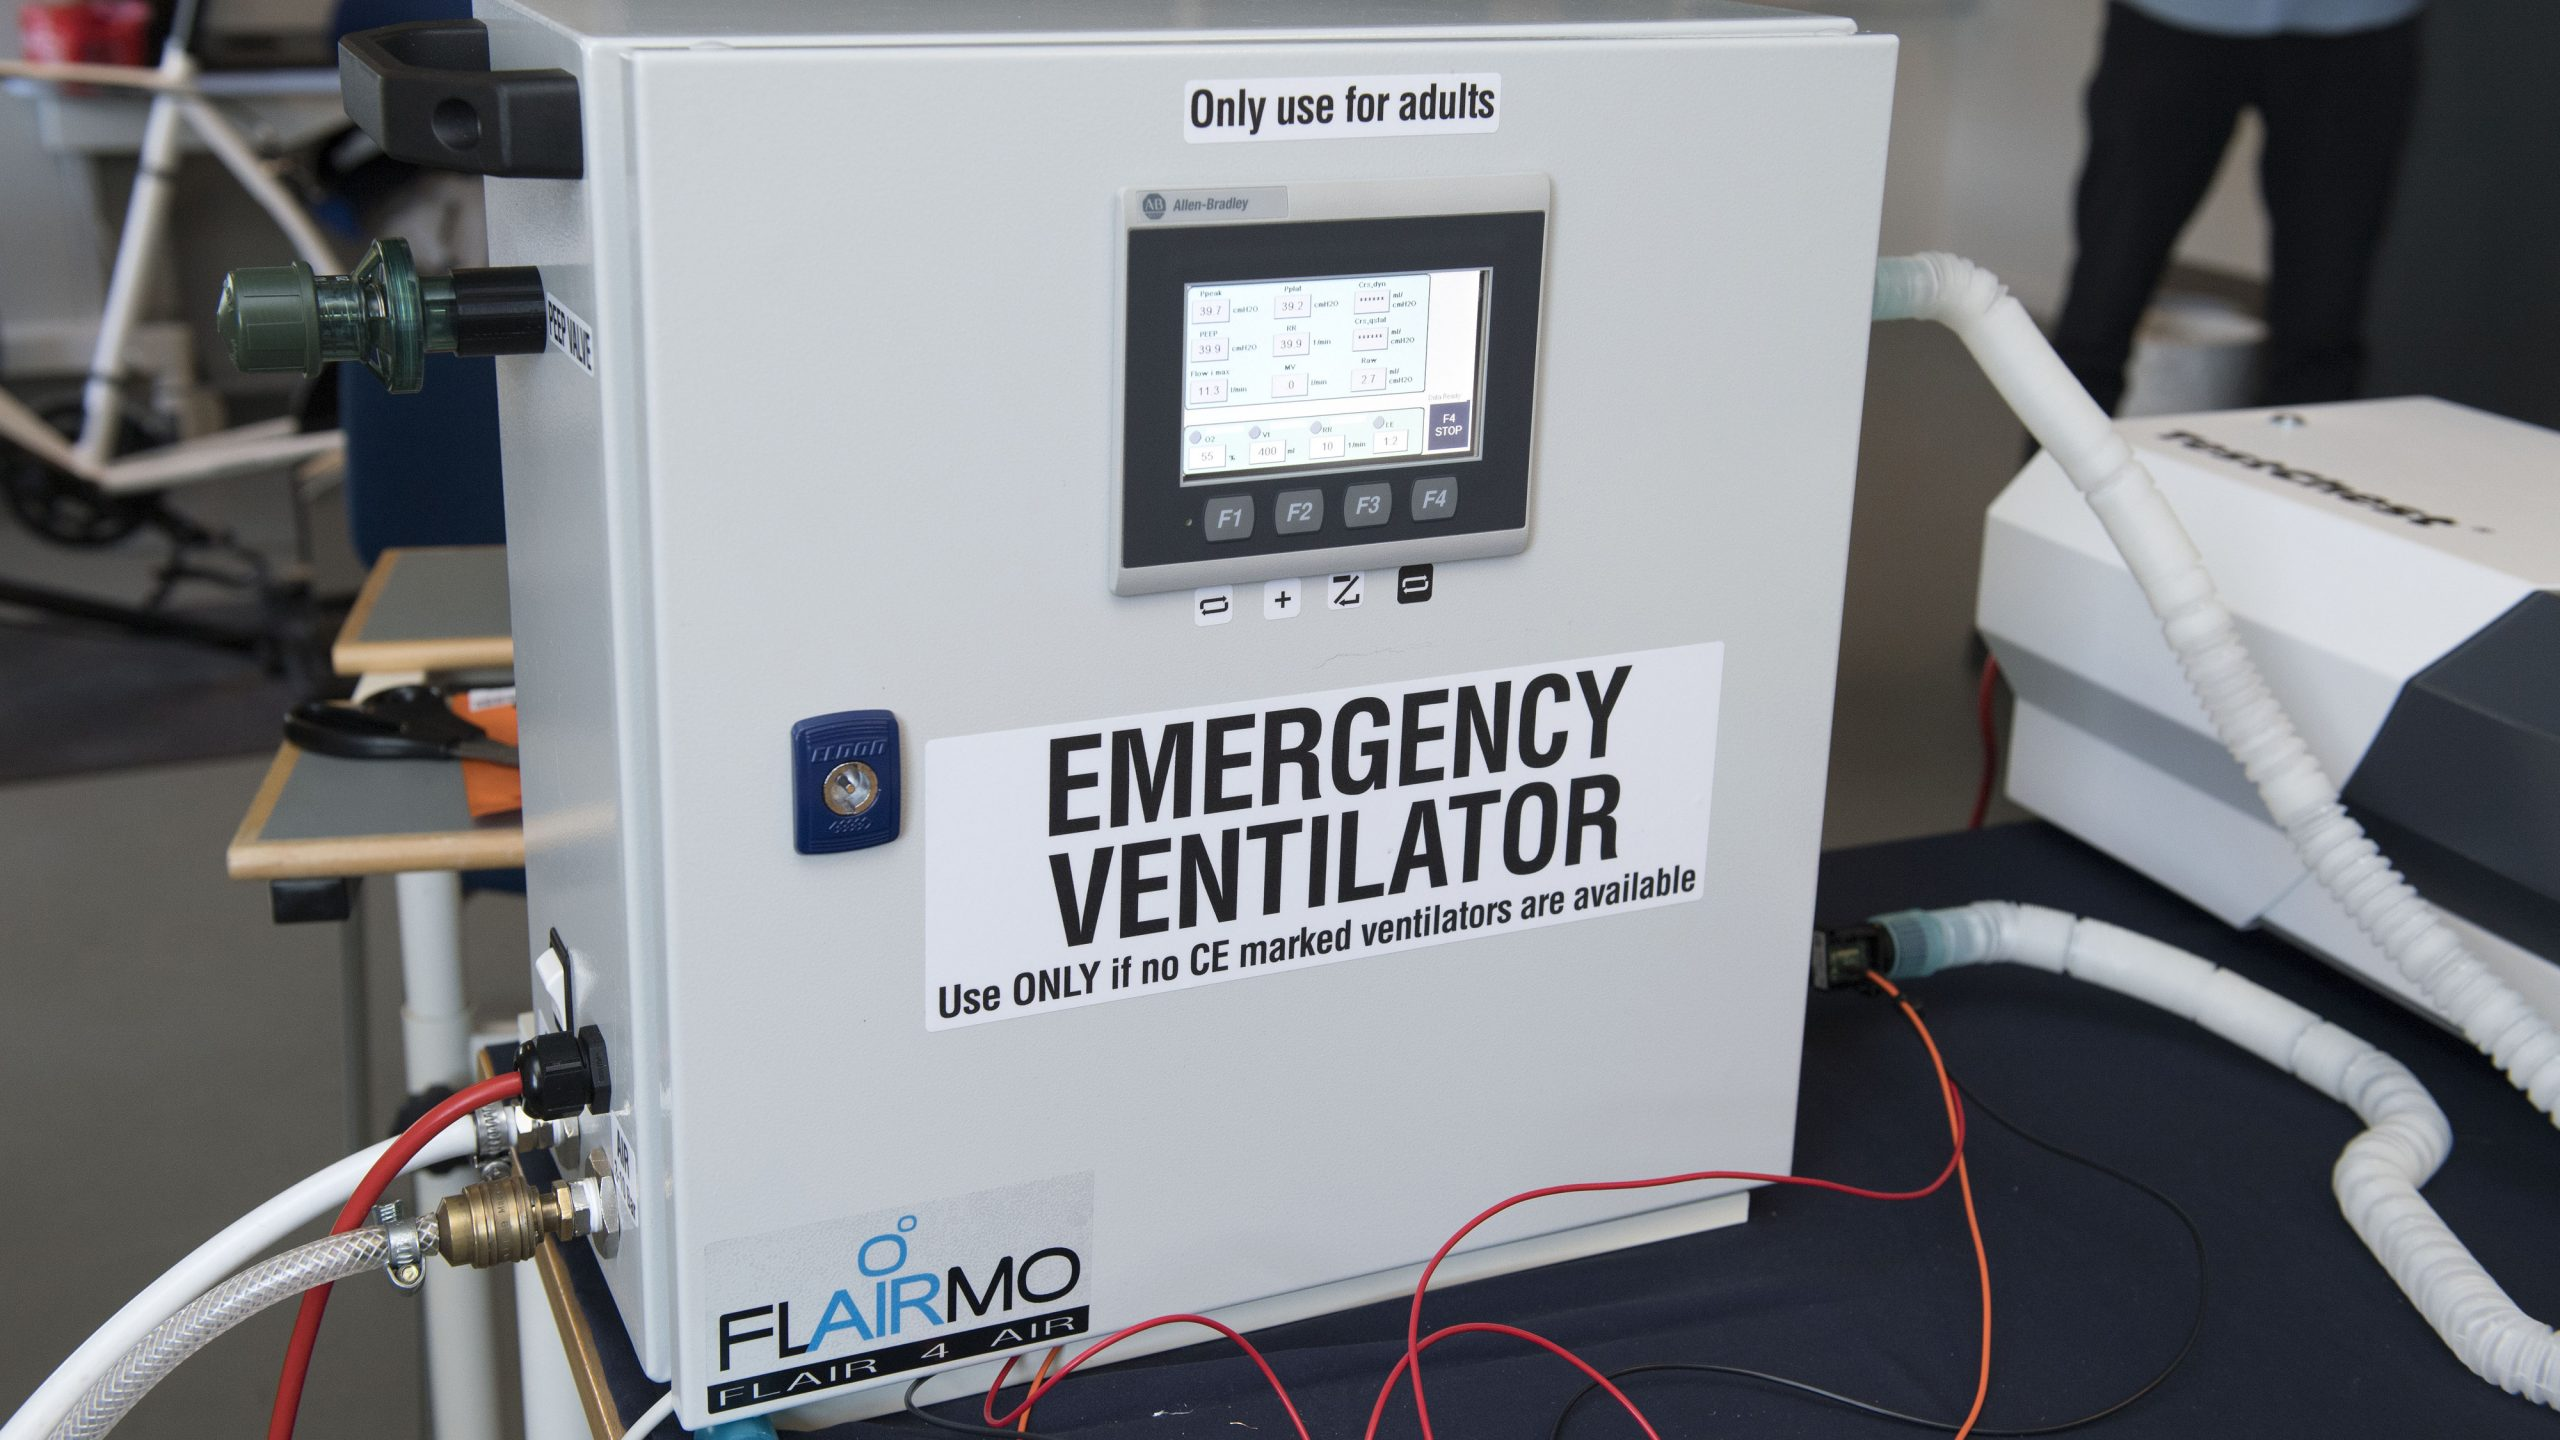 AAU Pandemic Ventilator Photo by: Lars Horn